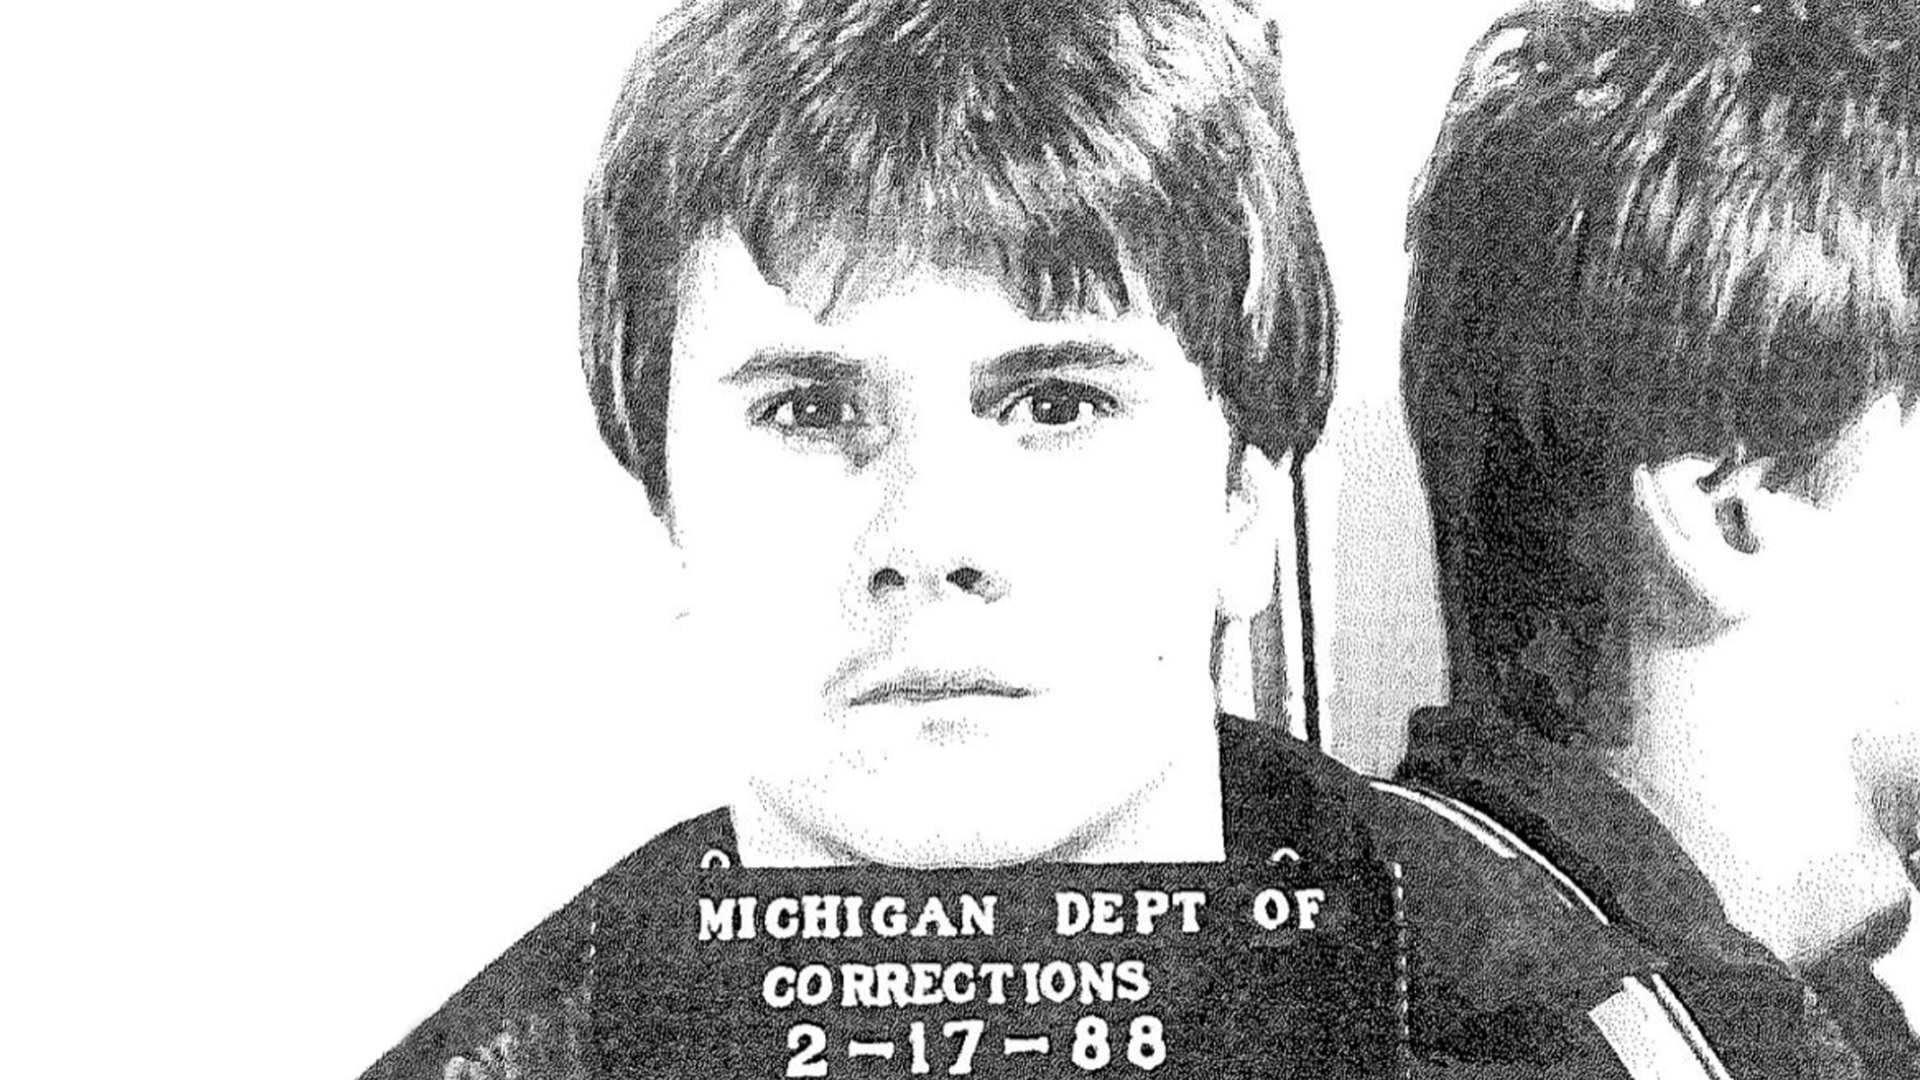 A New True-Crime Doc About 'White Boy' Rick Will Make You